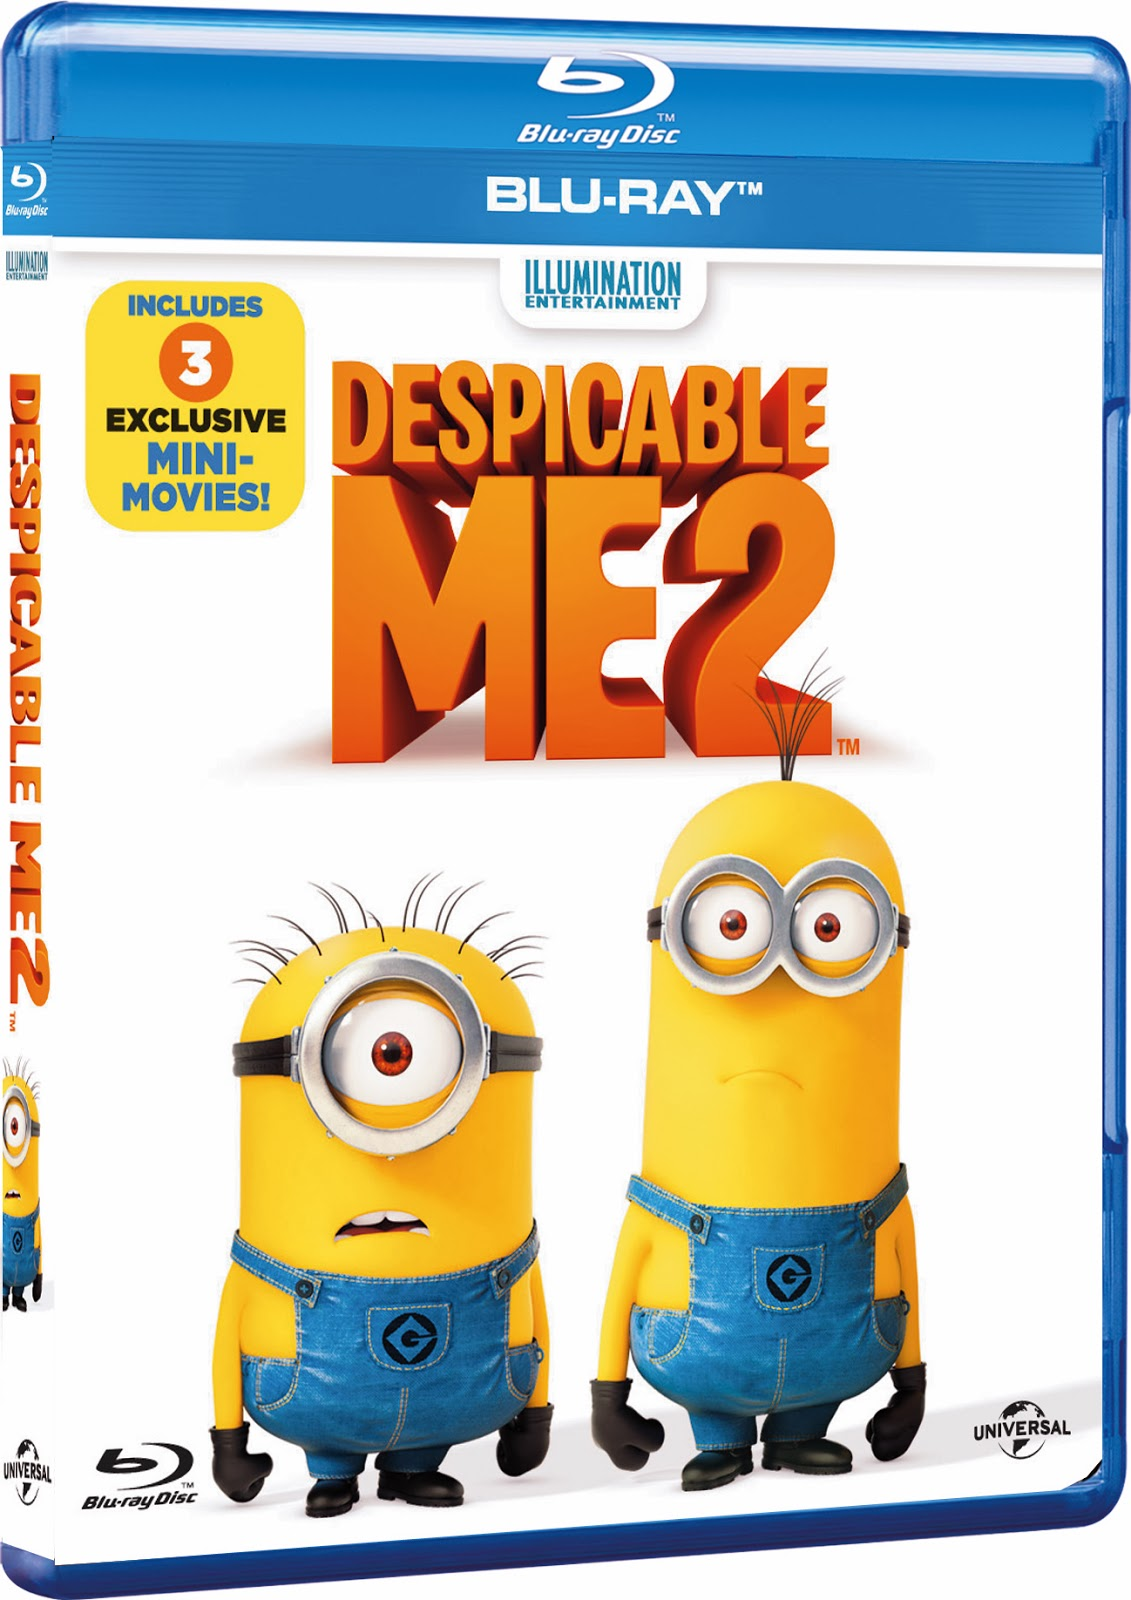 Despicable Me now out on DVD and Blu-ray! - Mix of Everything